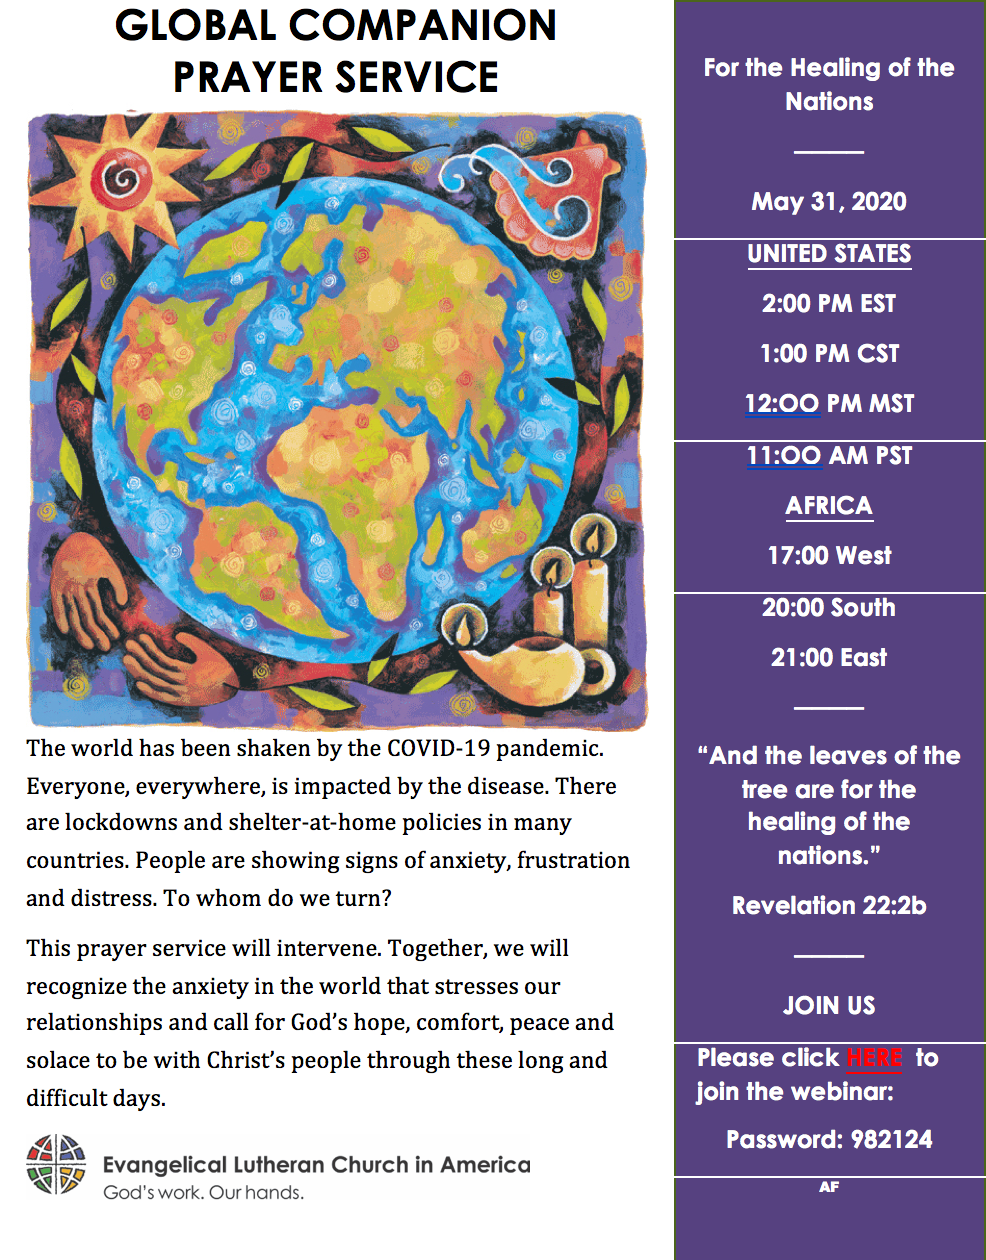 ELCA Global Companion Prayer Service-For the Healing of the Nations